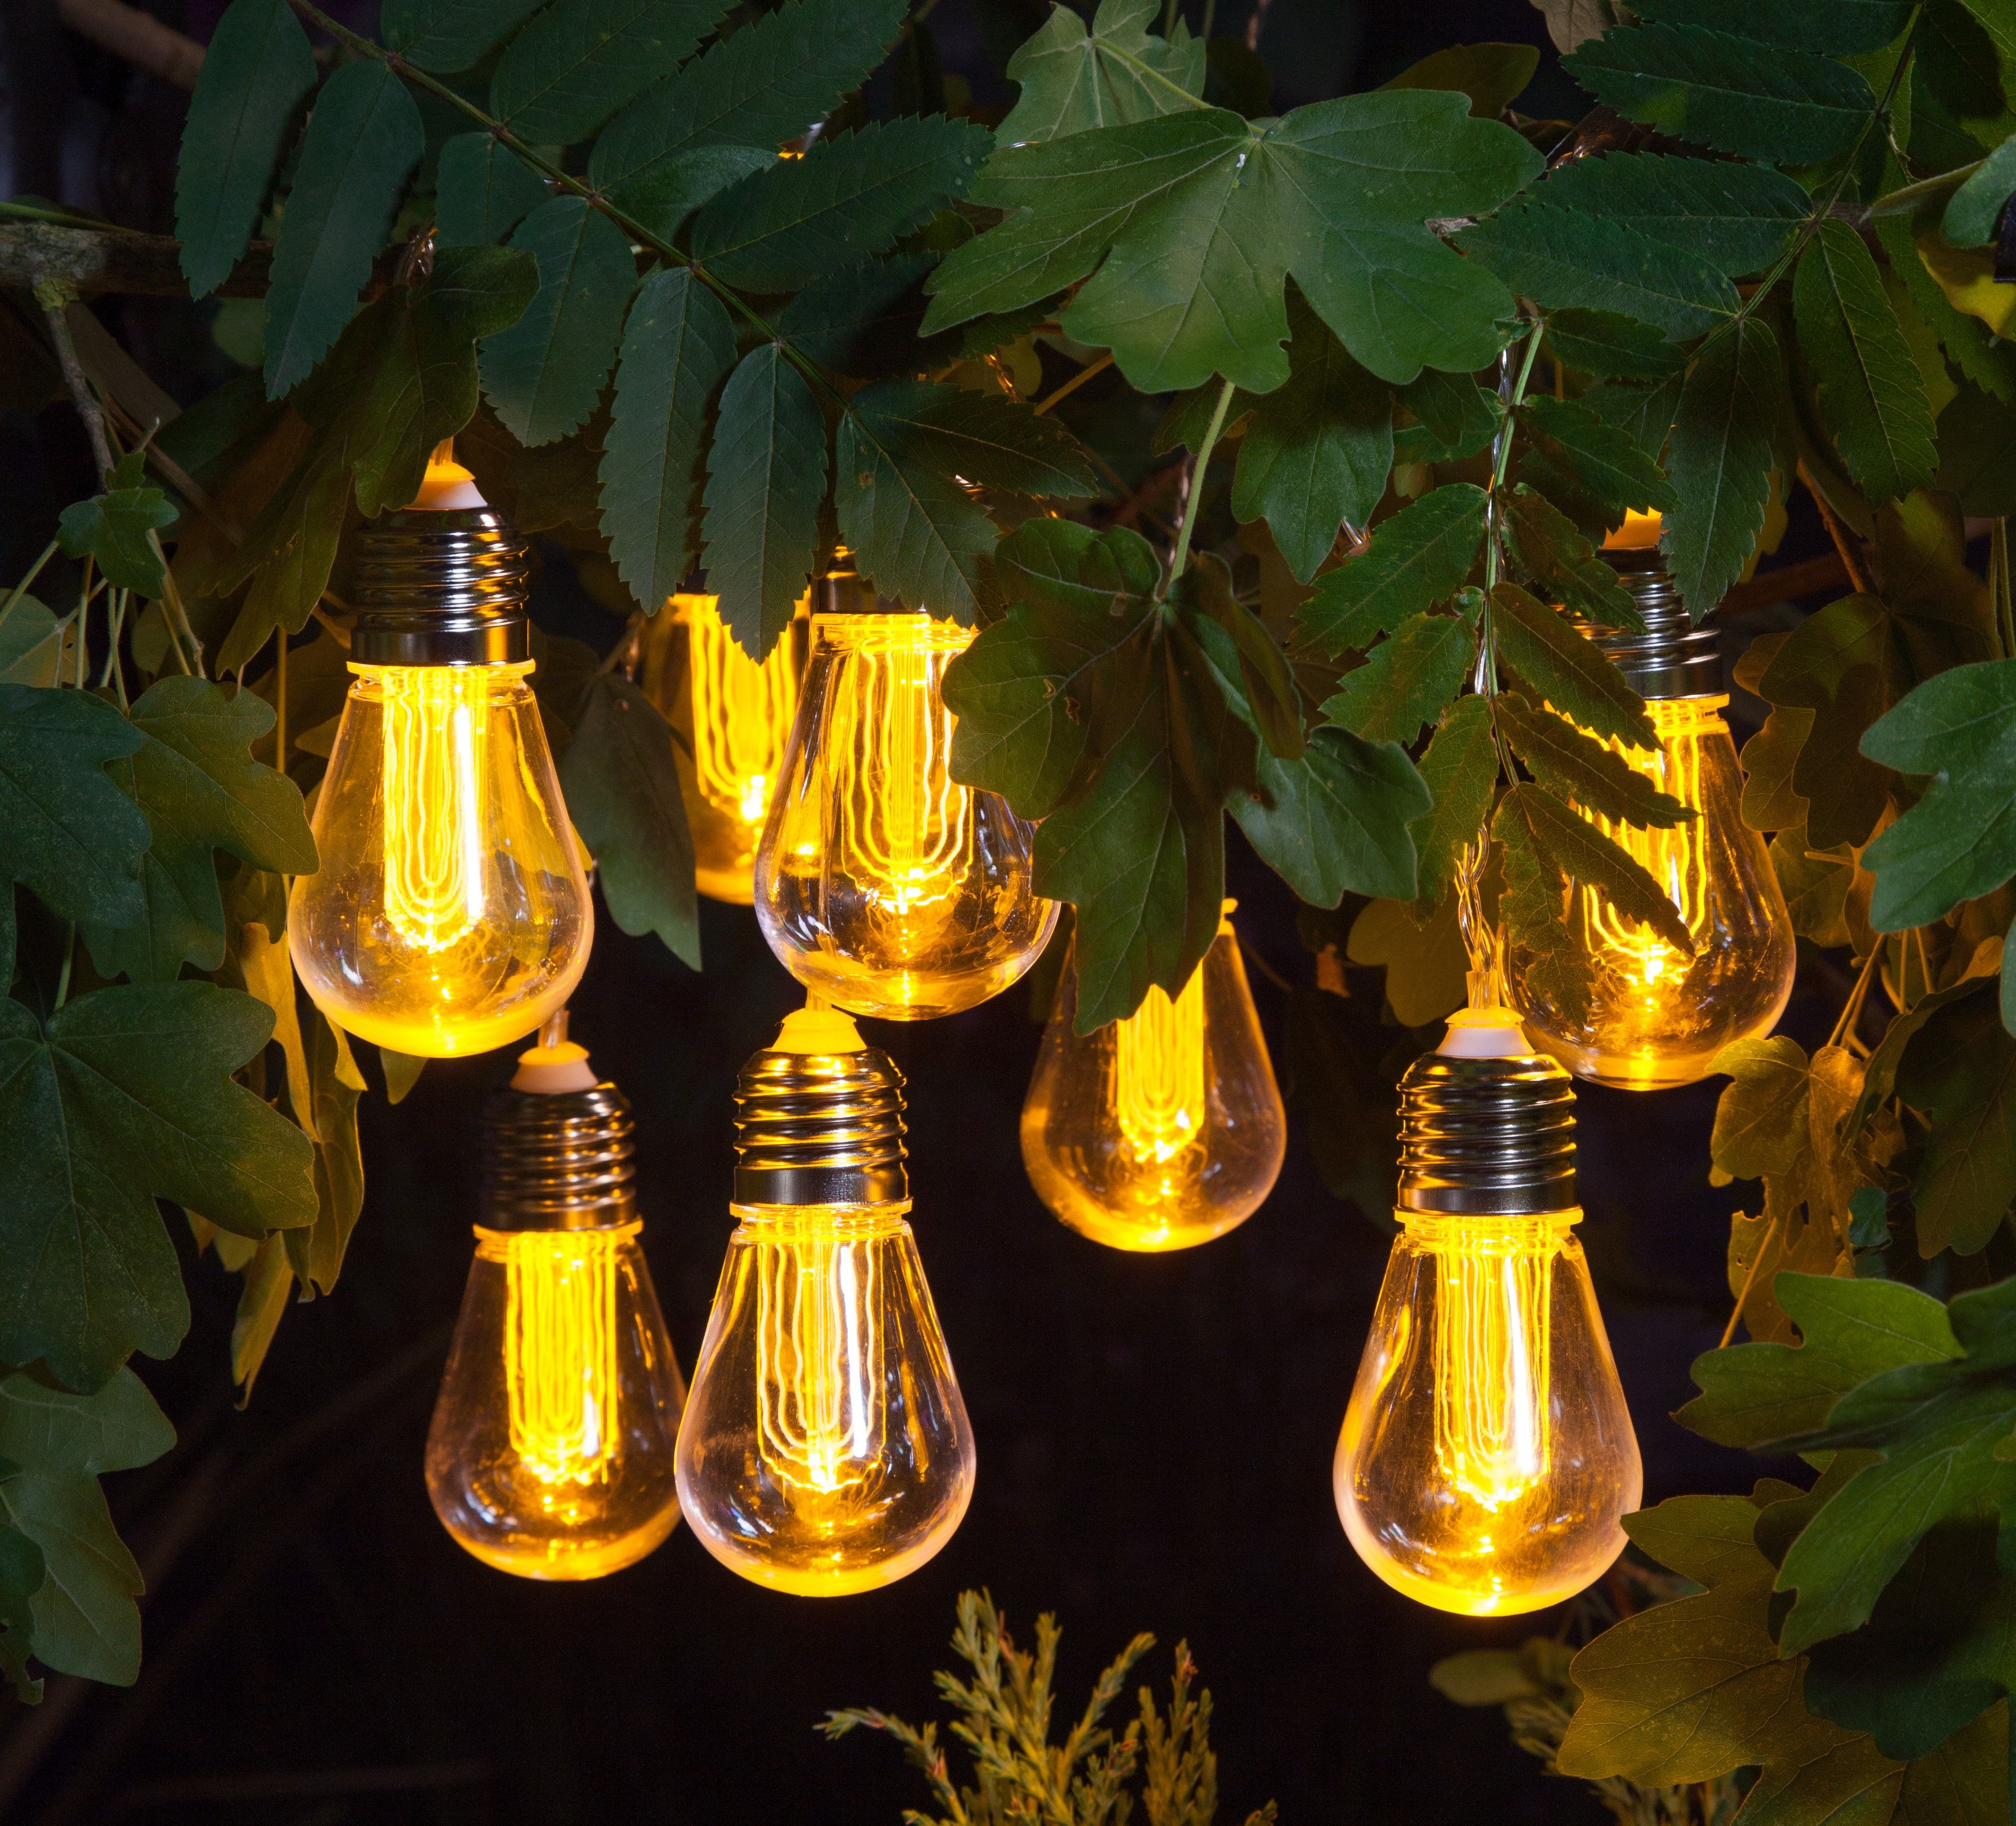 Pin on NOMA Garden Art Solar & Battery Garden Lighting